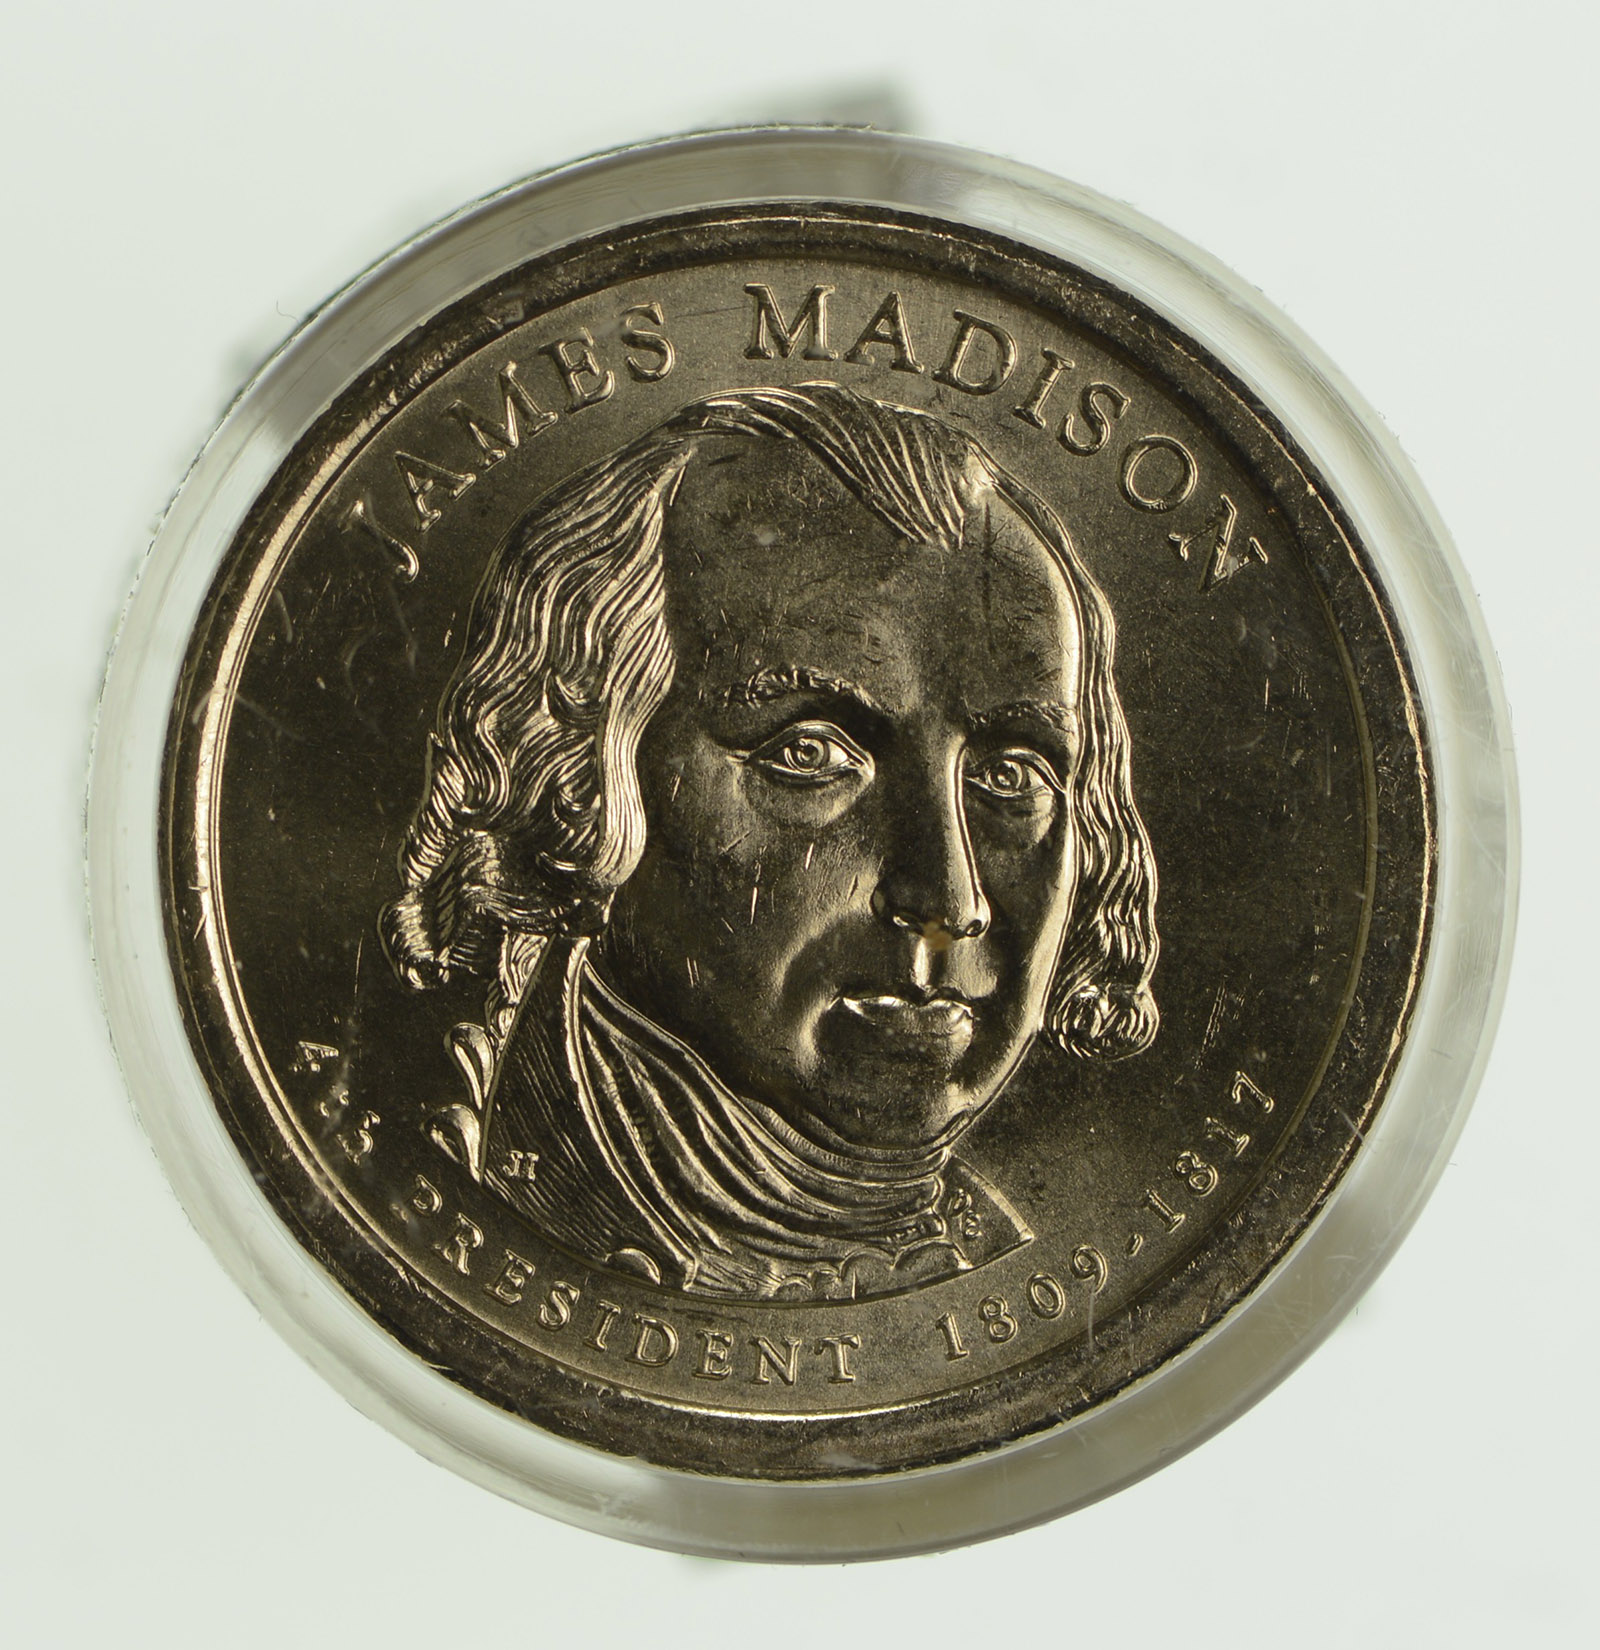 2007 US Mint P James Madison Presidential Dollar Coin Roll $25 Sealed Unopened